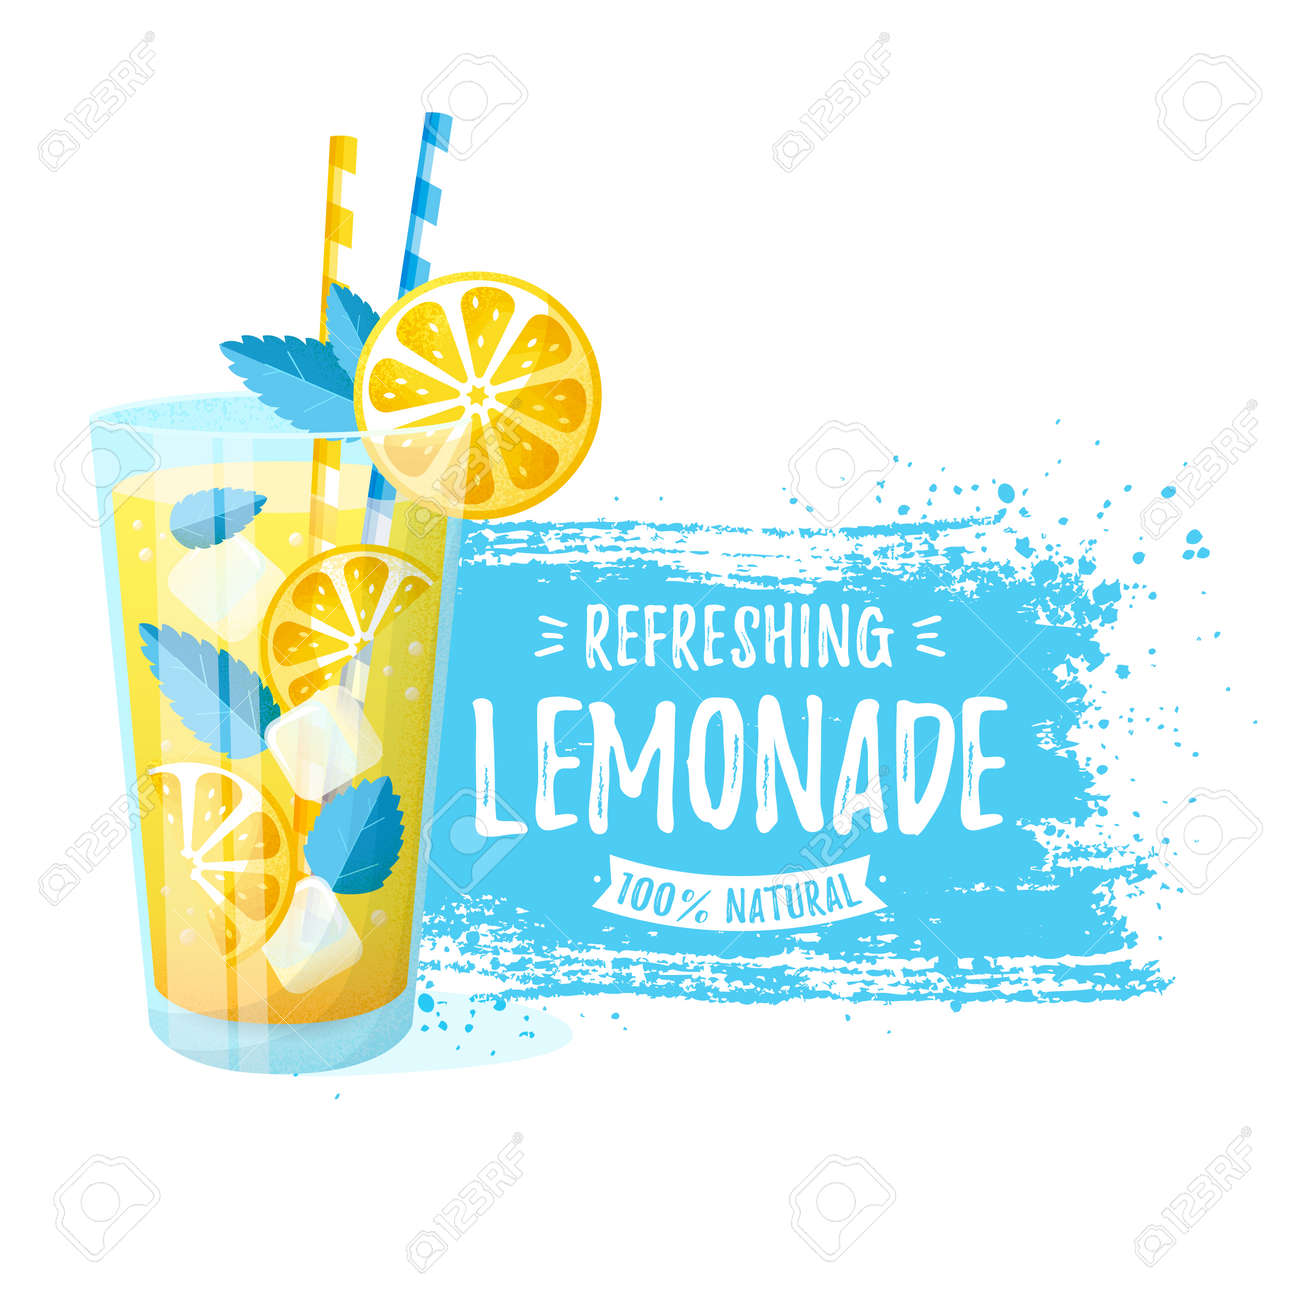 Lemonade - vector illustration. Modern banner with glass of refreshing drink and paint brush stroke isolated on a white background. - 169243825